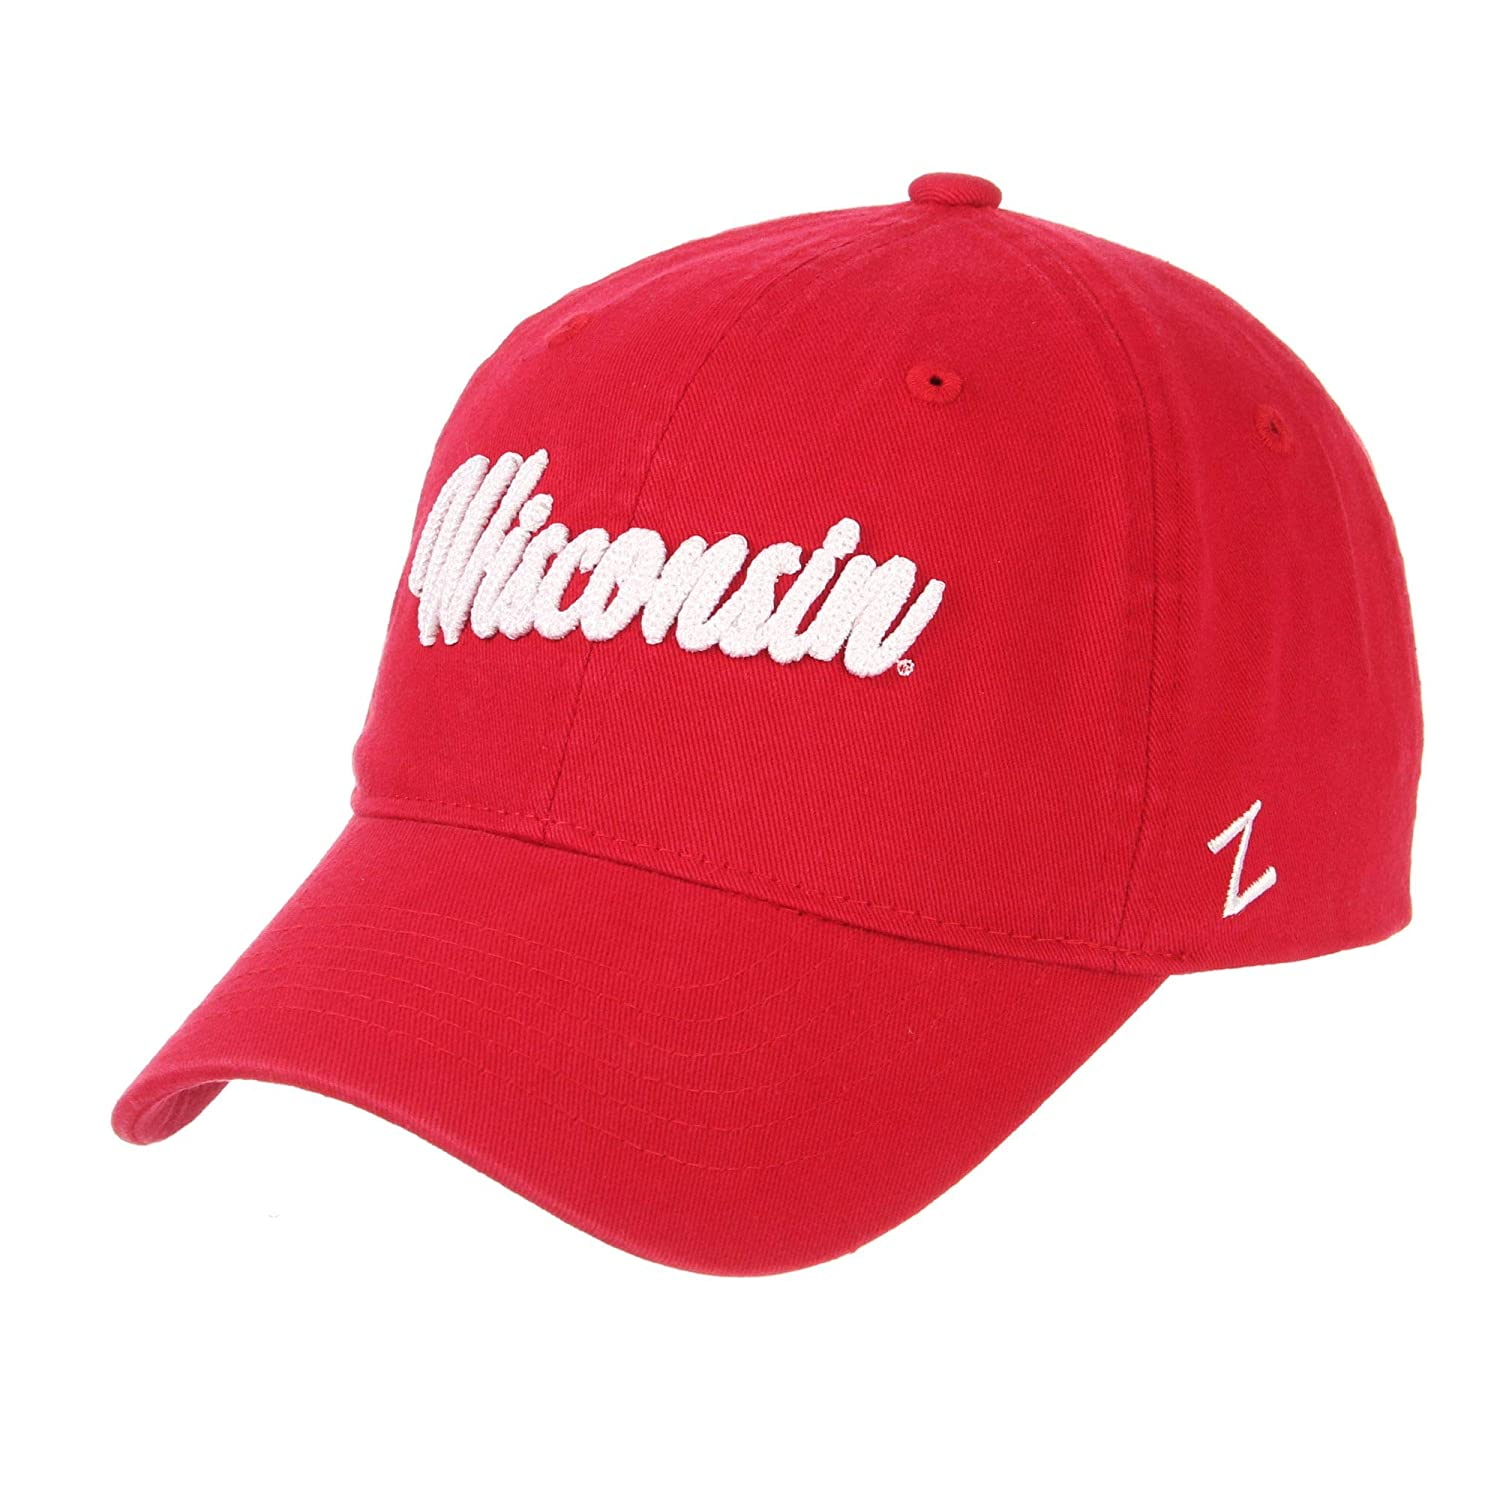 Wisconsin Badgers Official NCAA Scroll Adjustable Hat Cap by Zephyr 671689